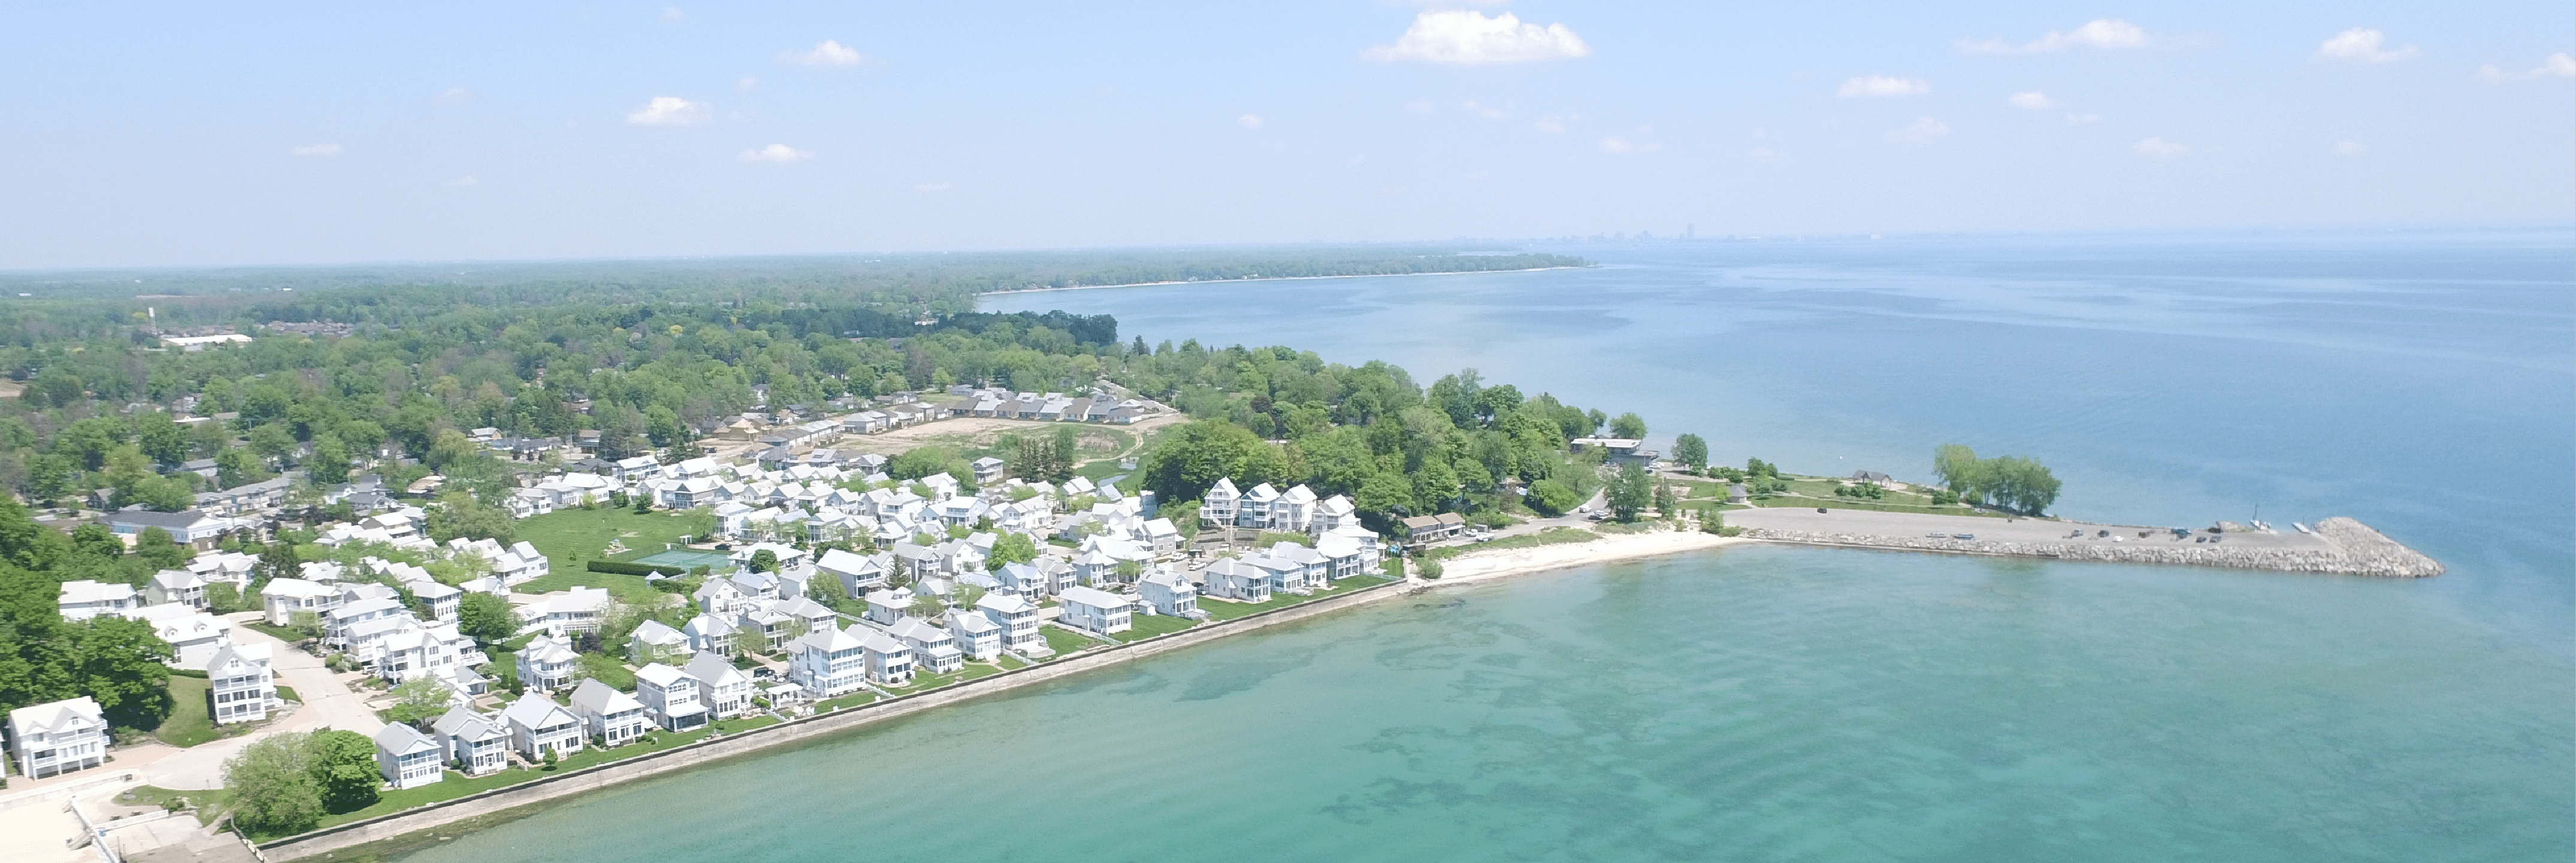 An aerial view of white homes near the lake shore